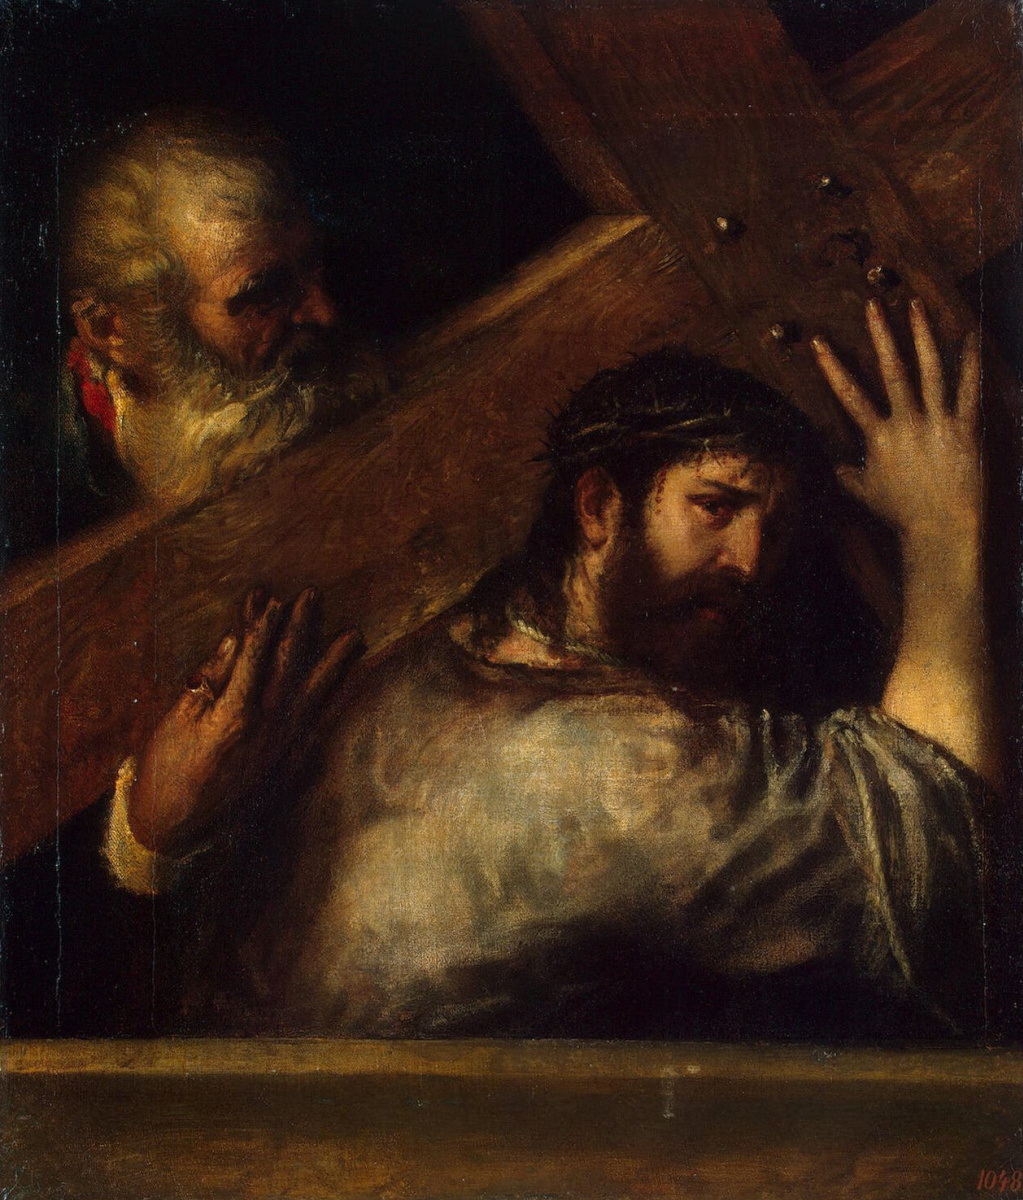 Titian Vecelli. The carrying of the cross